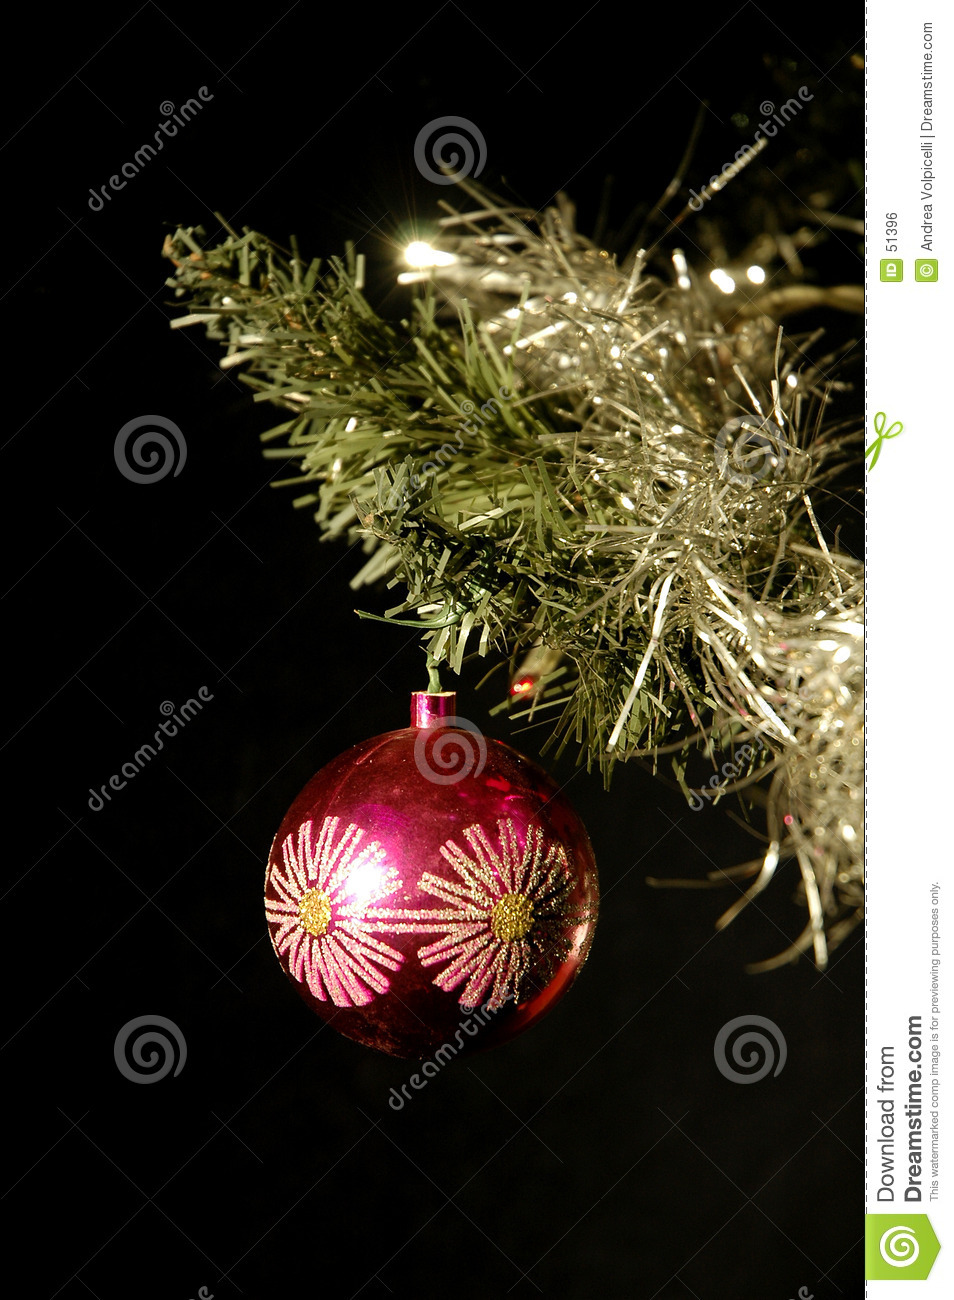 Download Bille 02 de Noël photo stock. Image du rougeâtre, radieux - 51396